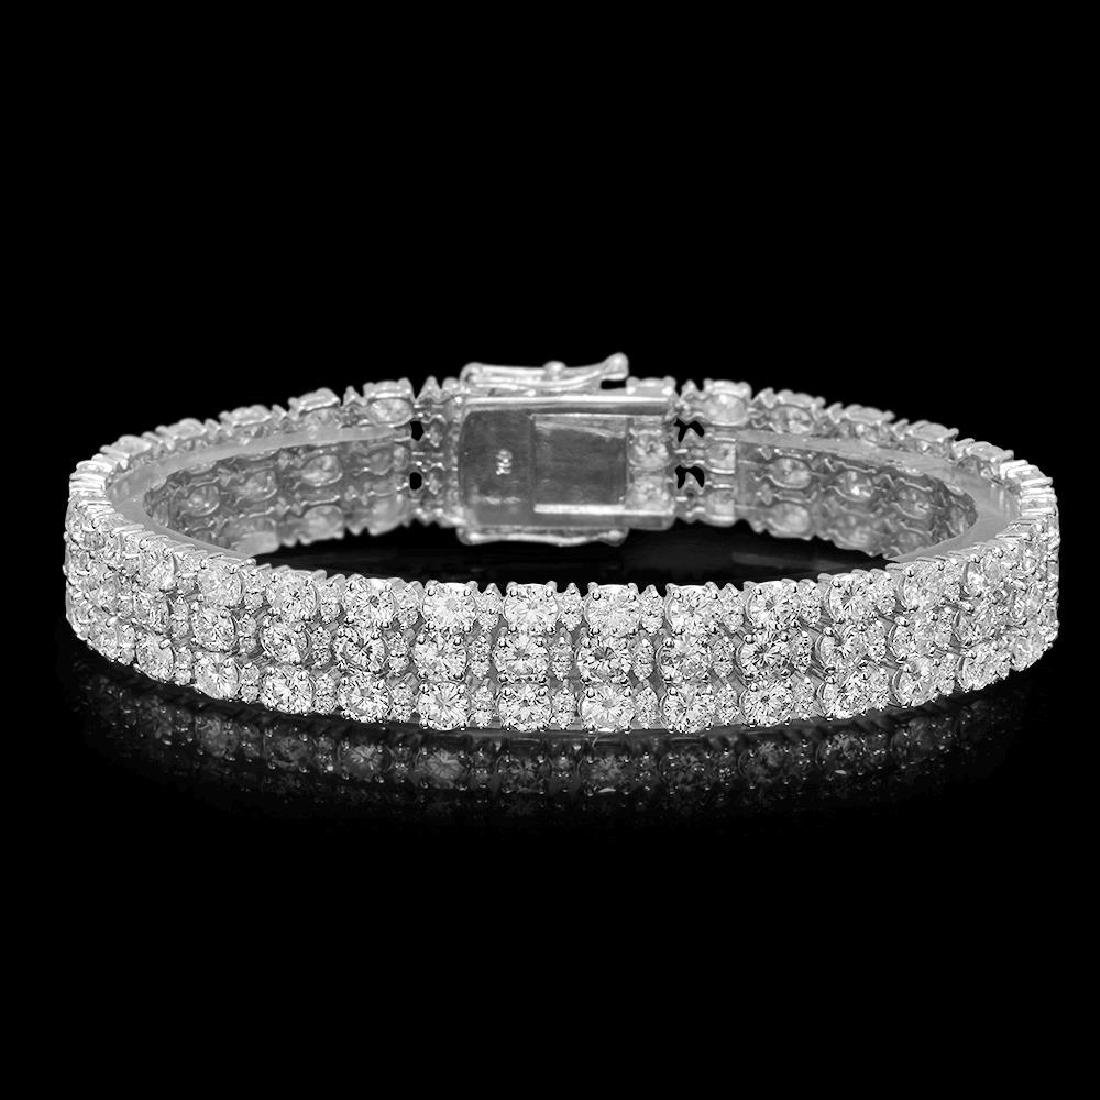 18K Gold 16.95ct Diamond Bracelet